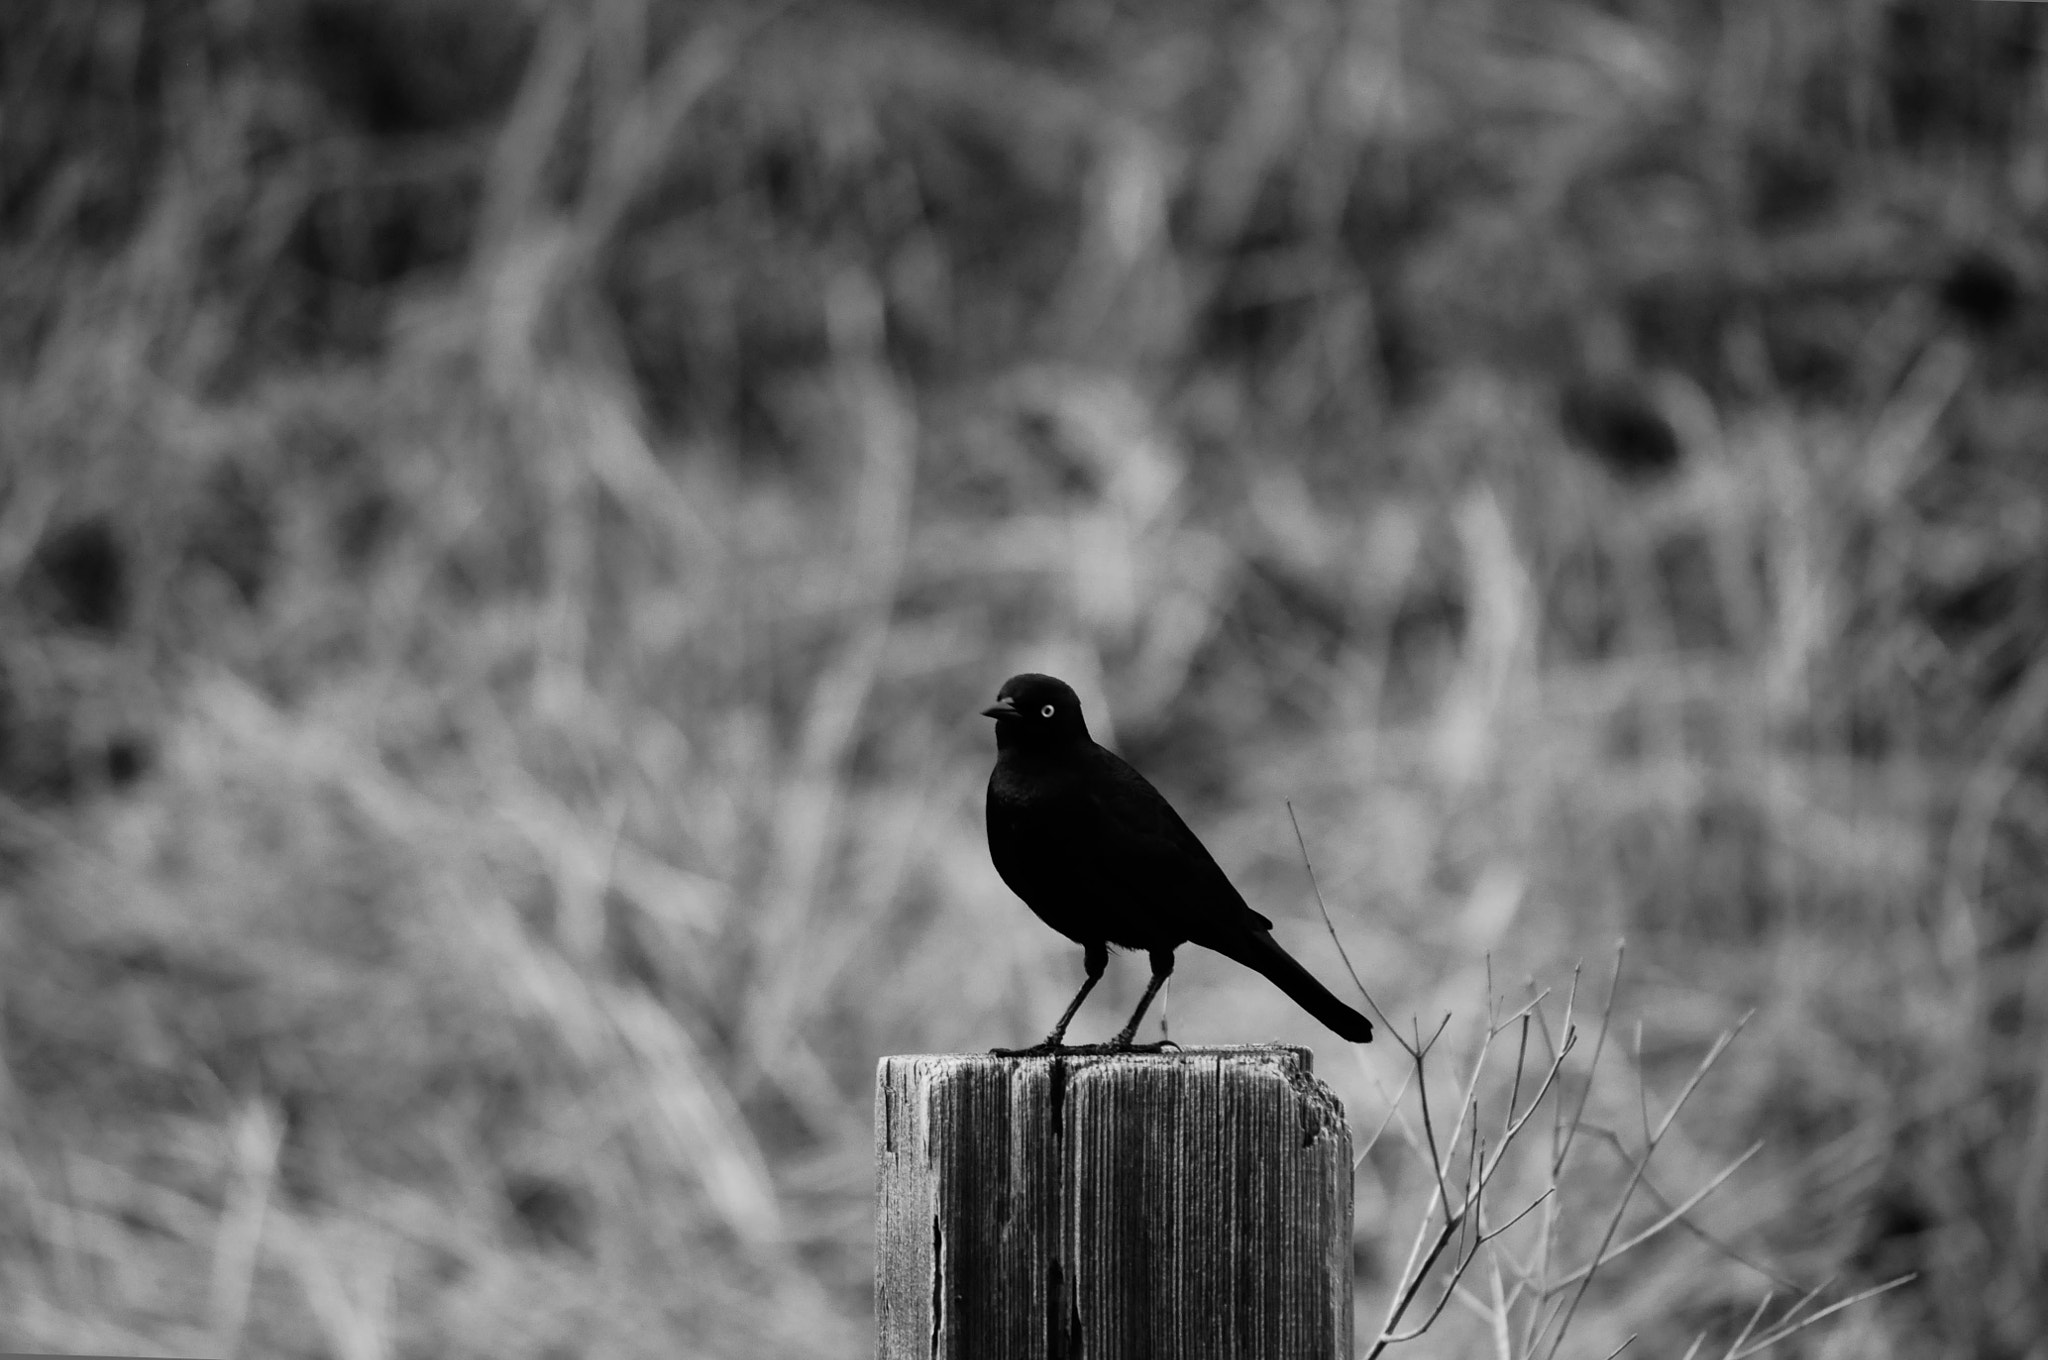 Photograph Black Bird by N Simpson on 500px